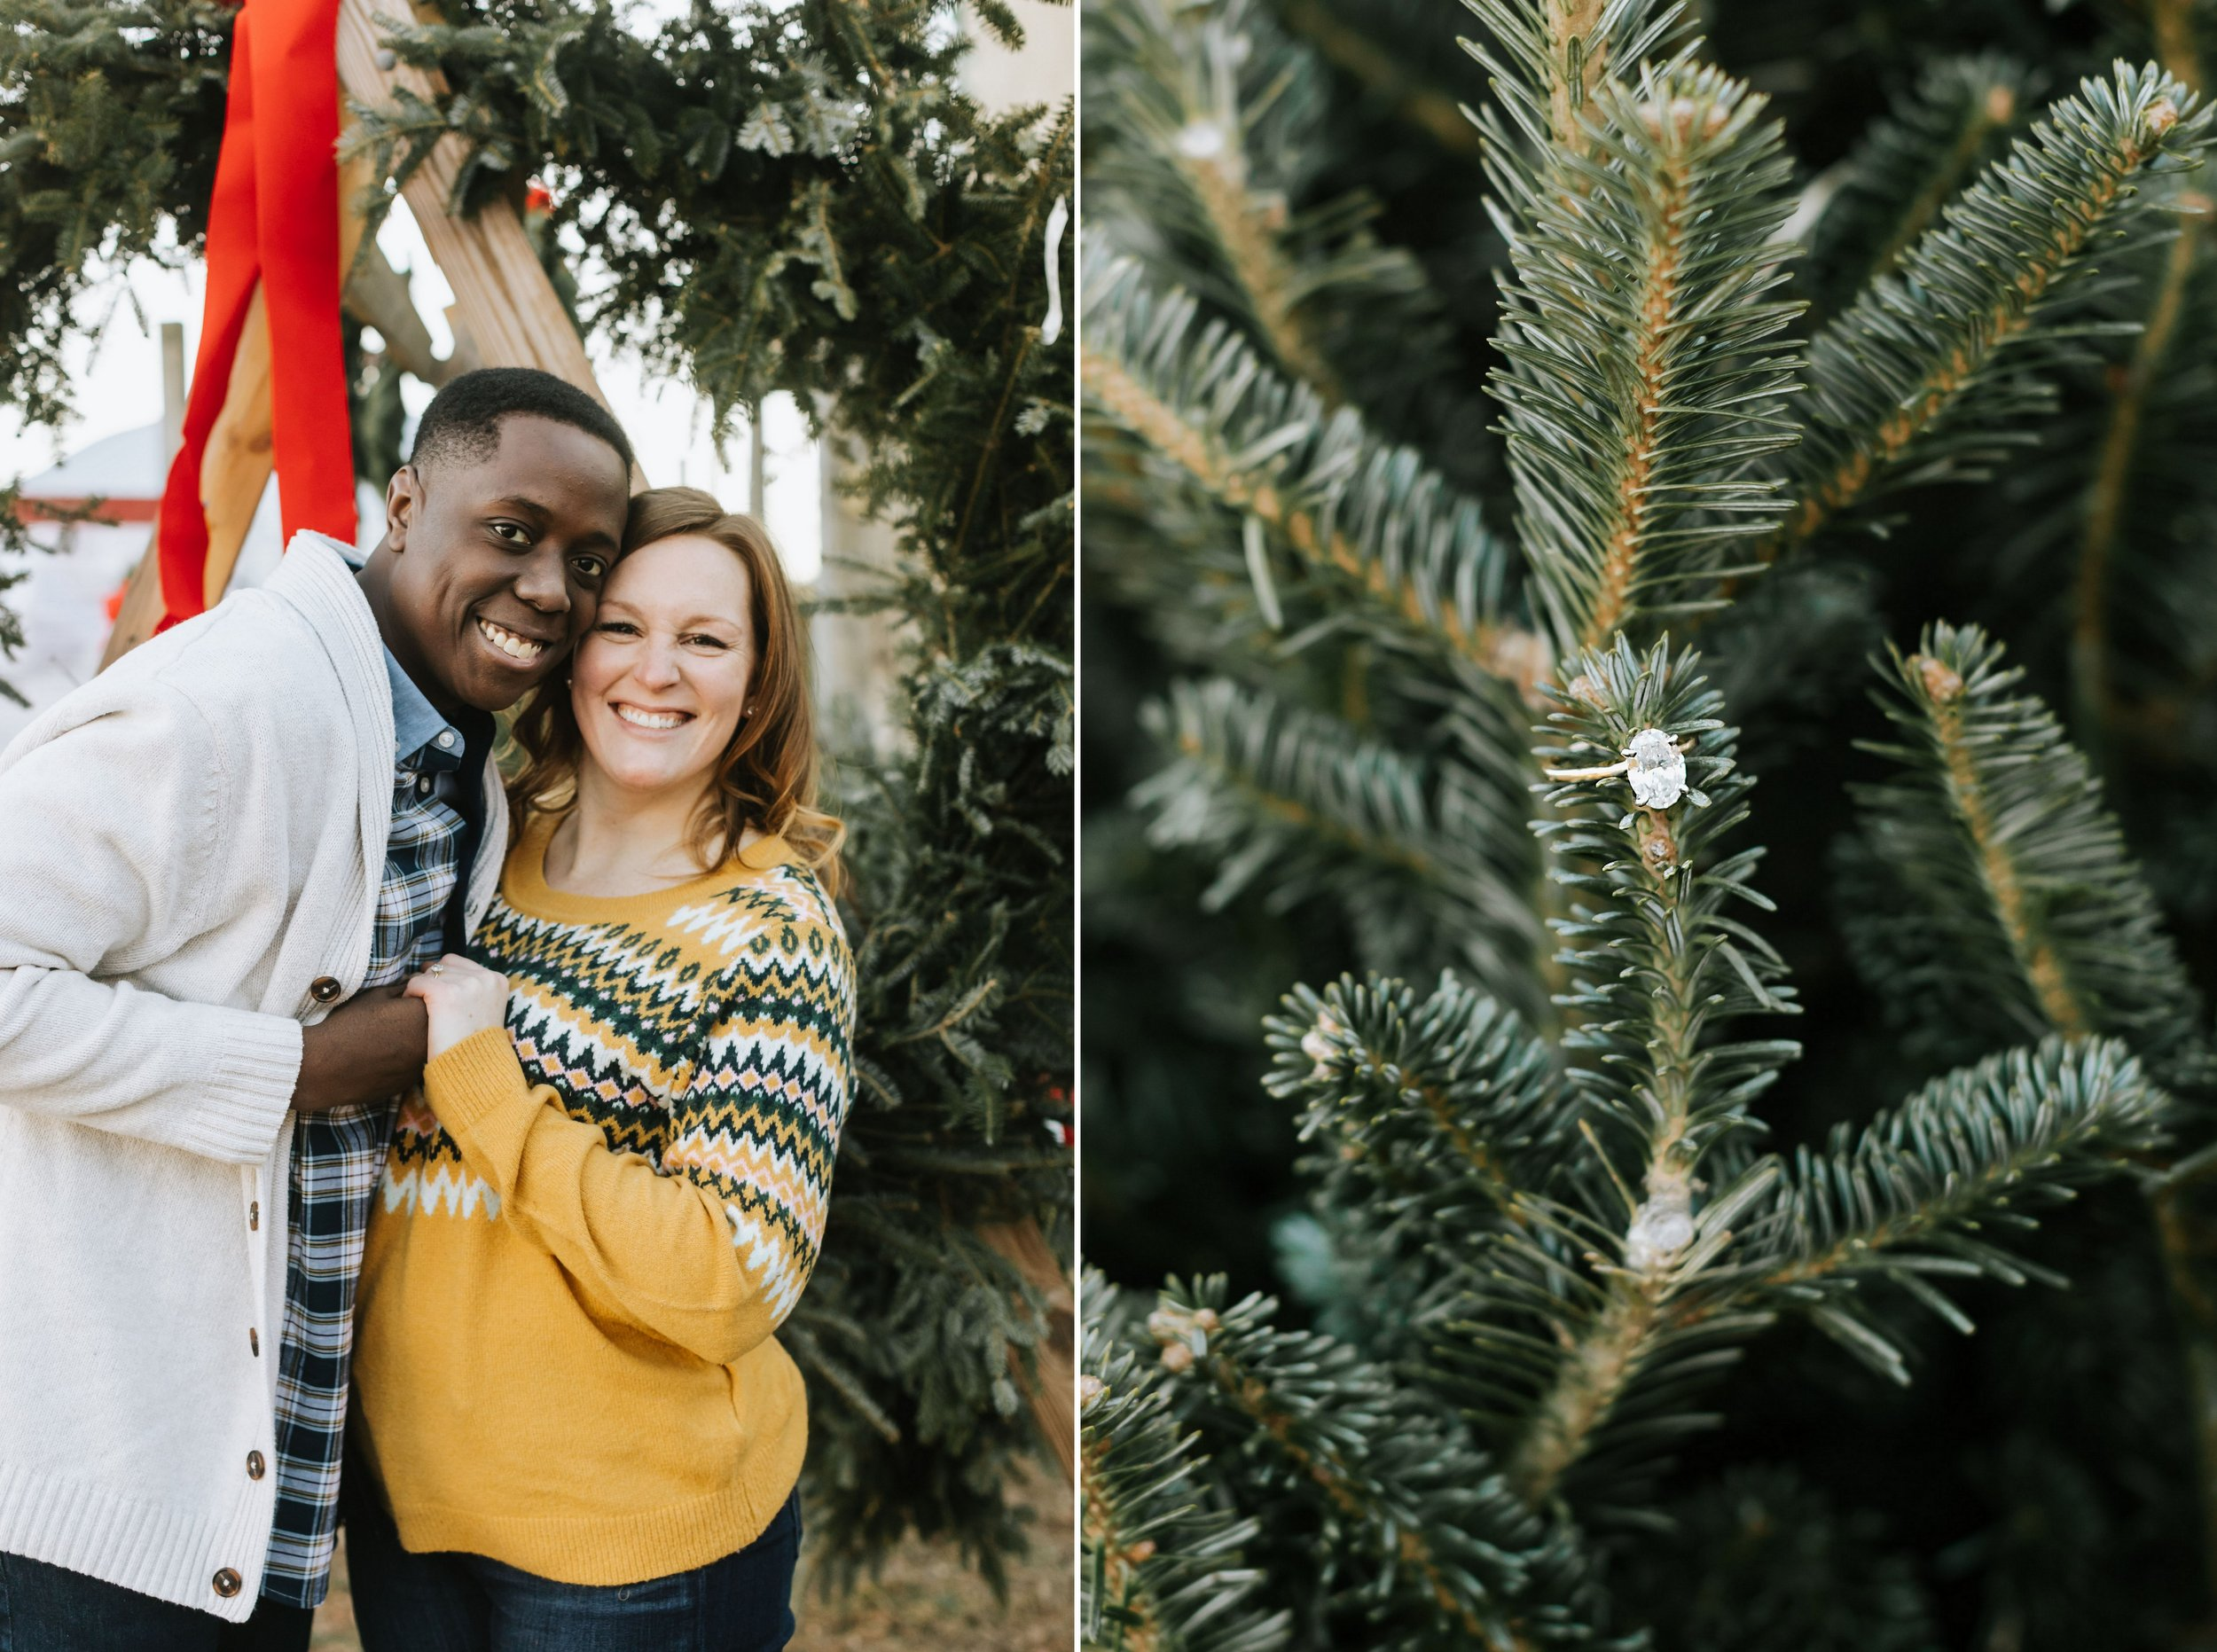 Winter-Tree-Farm-Engagement-Boston-12.jpg